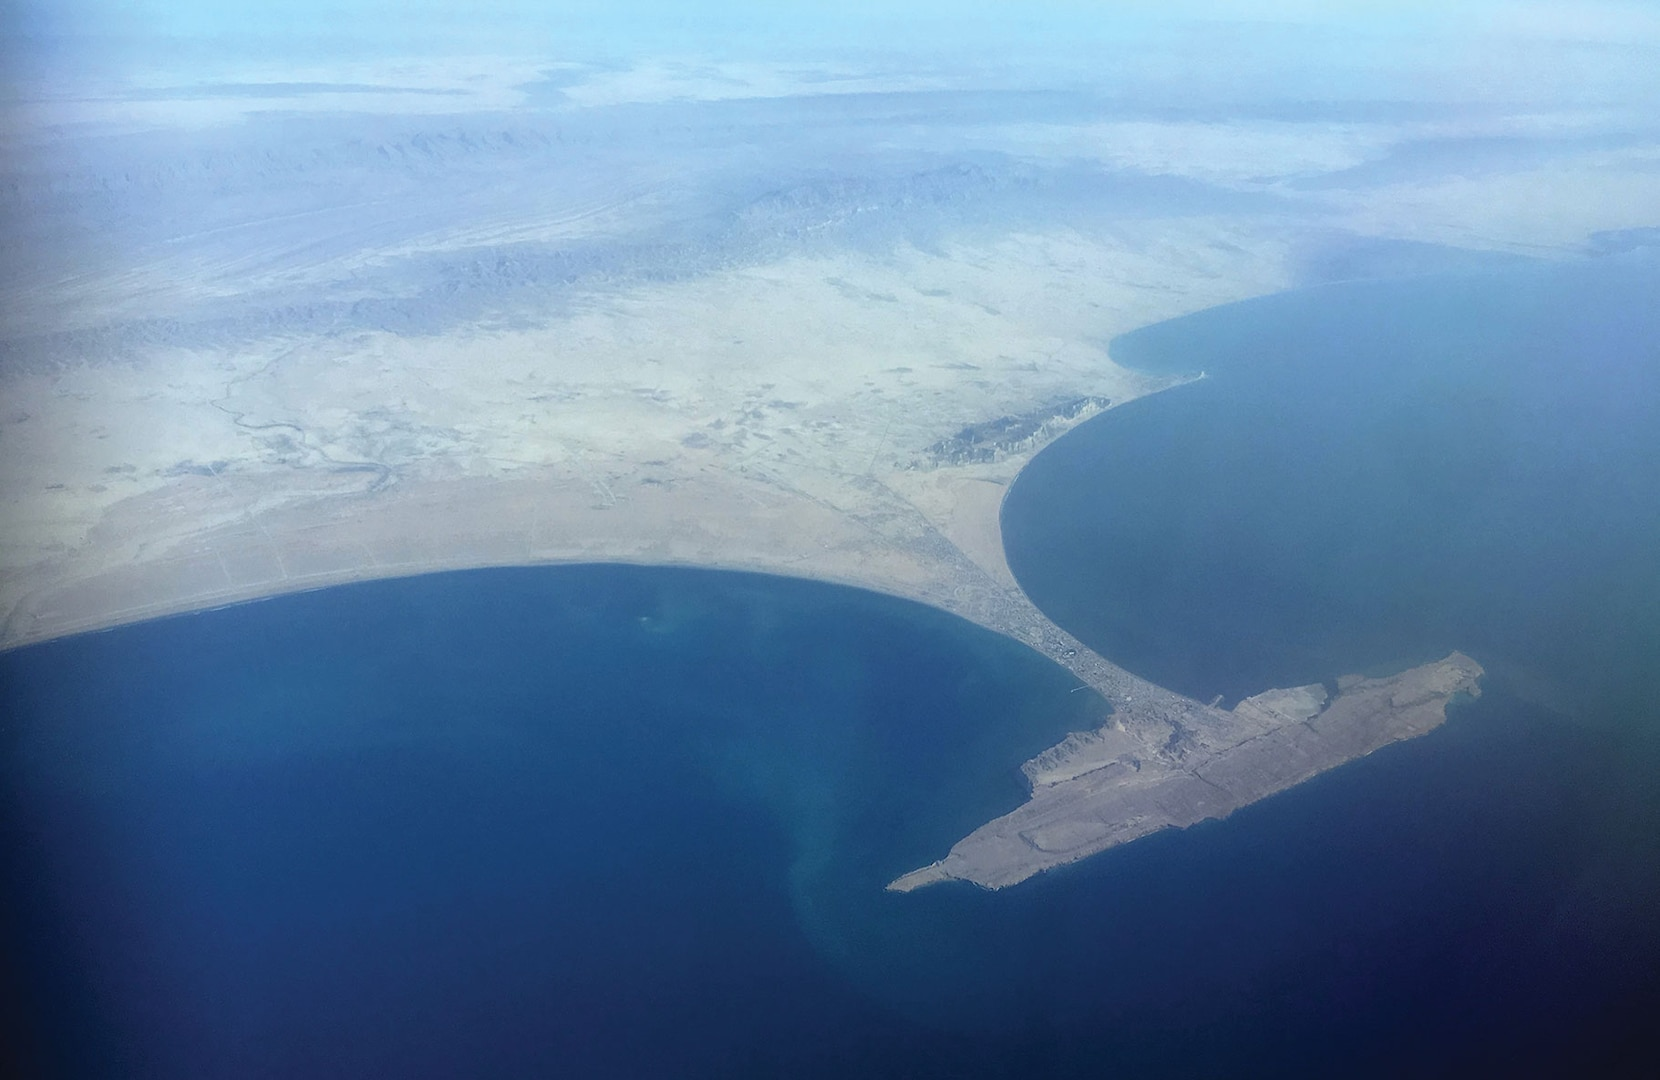 Aerial view of Gwadar (Balochistan), western Pakistan, by the Arab Sea. This port is being leased to China for 43 years under